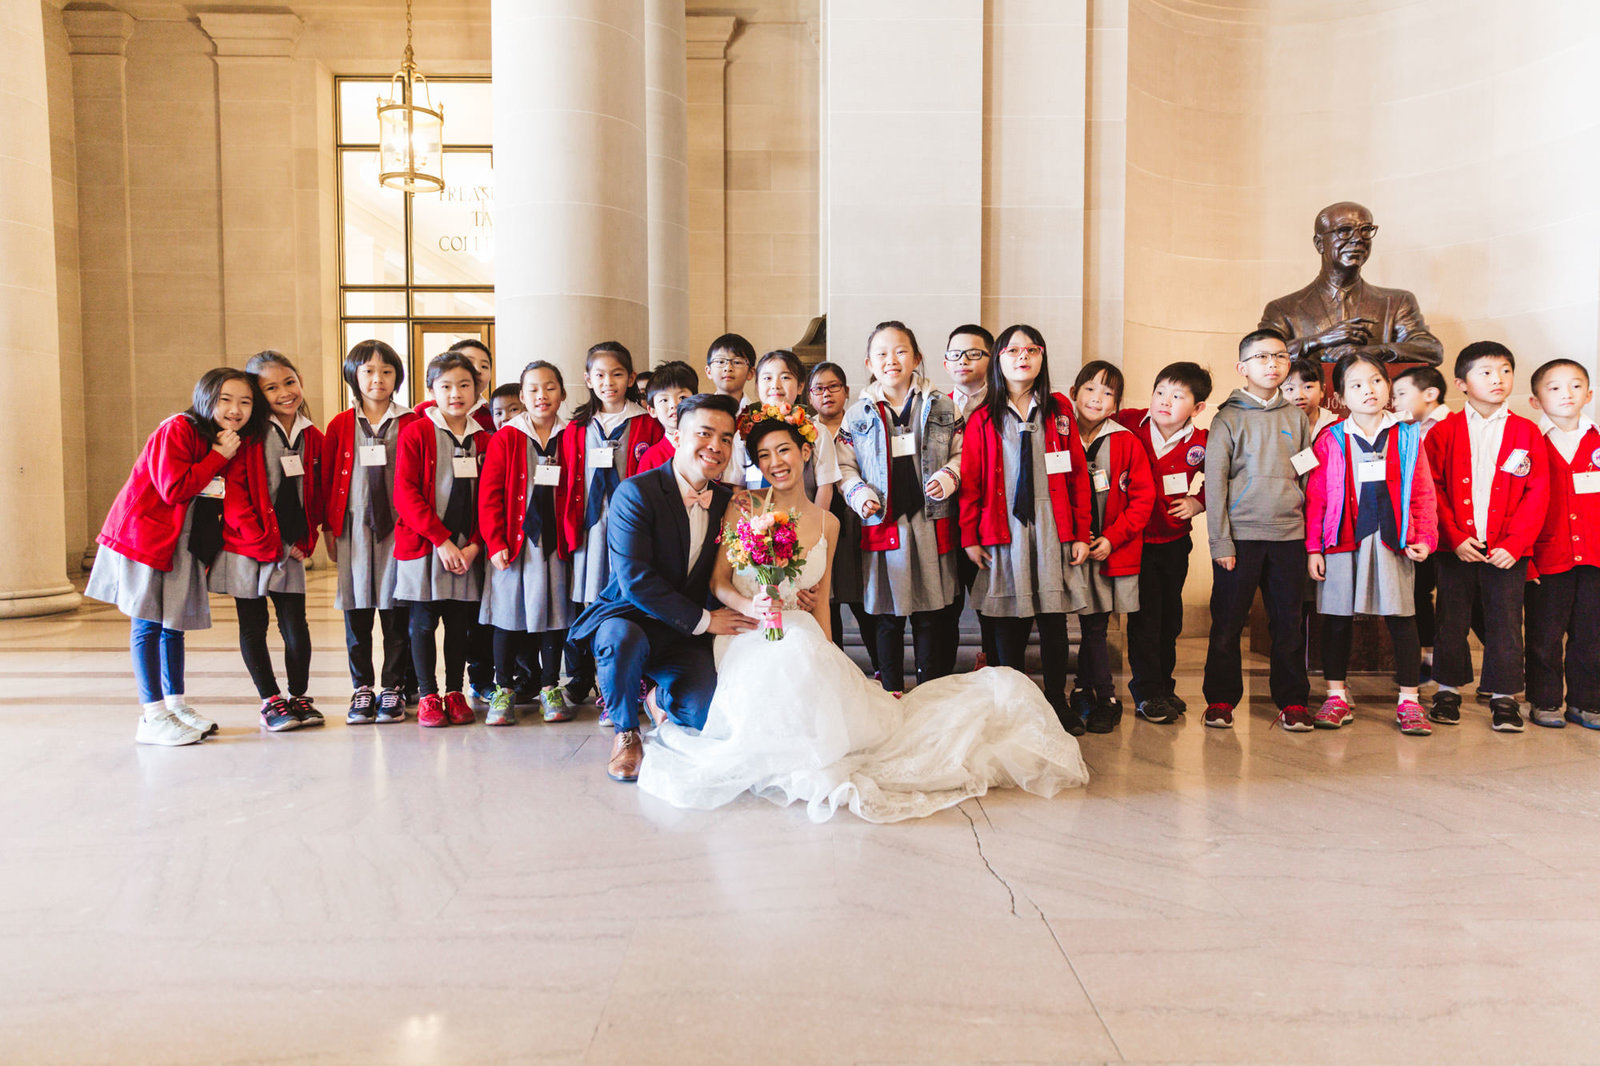 wedding photo at san francisco city hall with a huge group of schoolchildren on a school trip